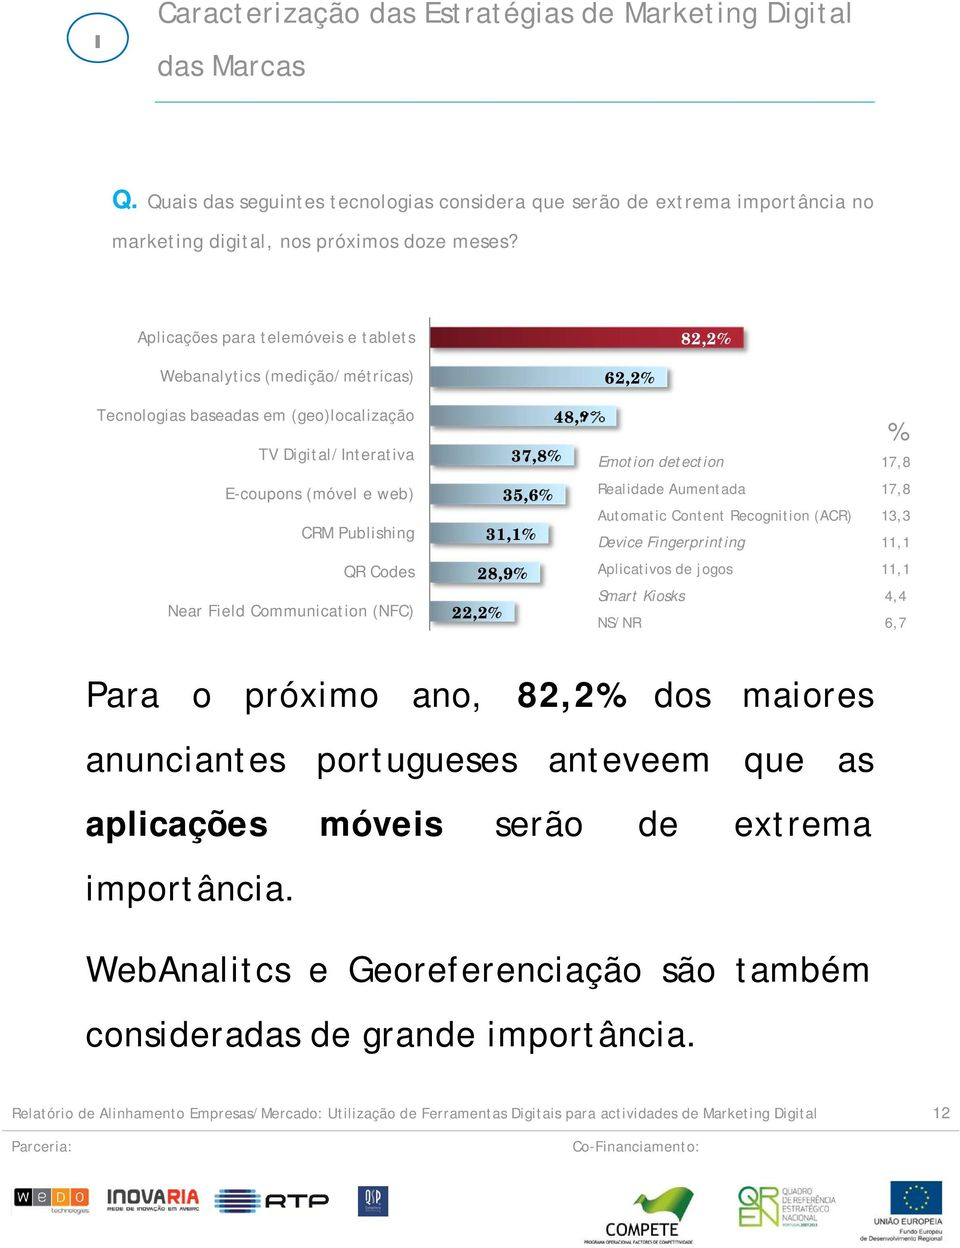 Communication (NFC) 37,8% 35,6% 31,1% 28,9% 22,2% 62,2% 48,9% % Emotion detection 17,8 Realidade Aumentada 17,8 Automatic Content Recognition (ACR) 13,3 Device Fingerprinting 11,1 Aplicativos de